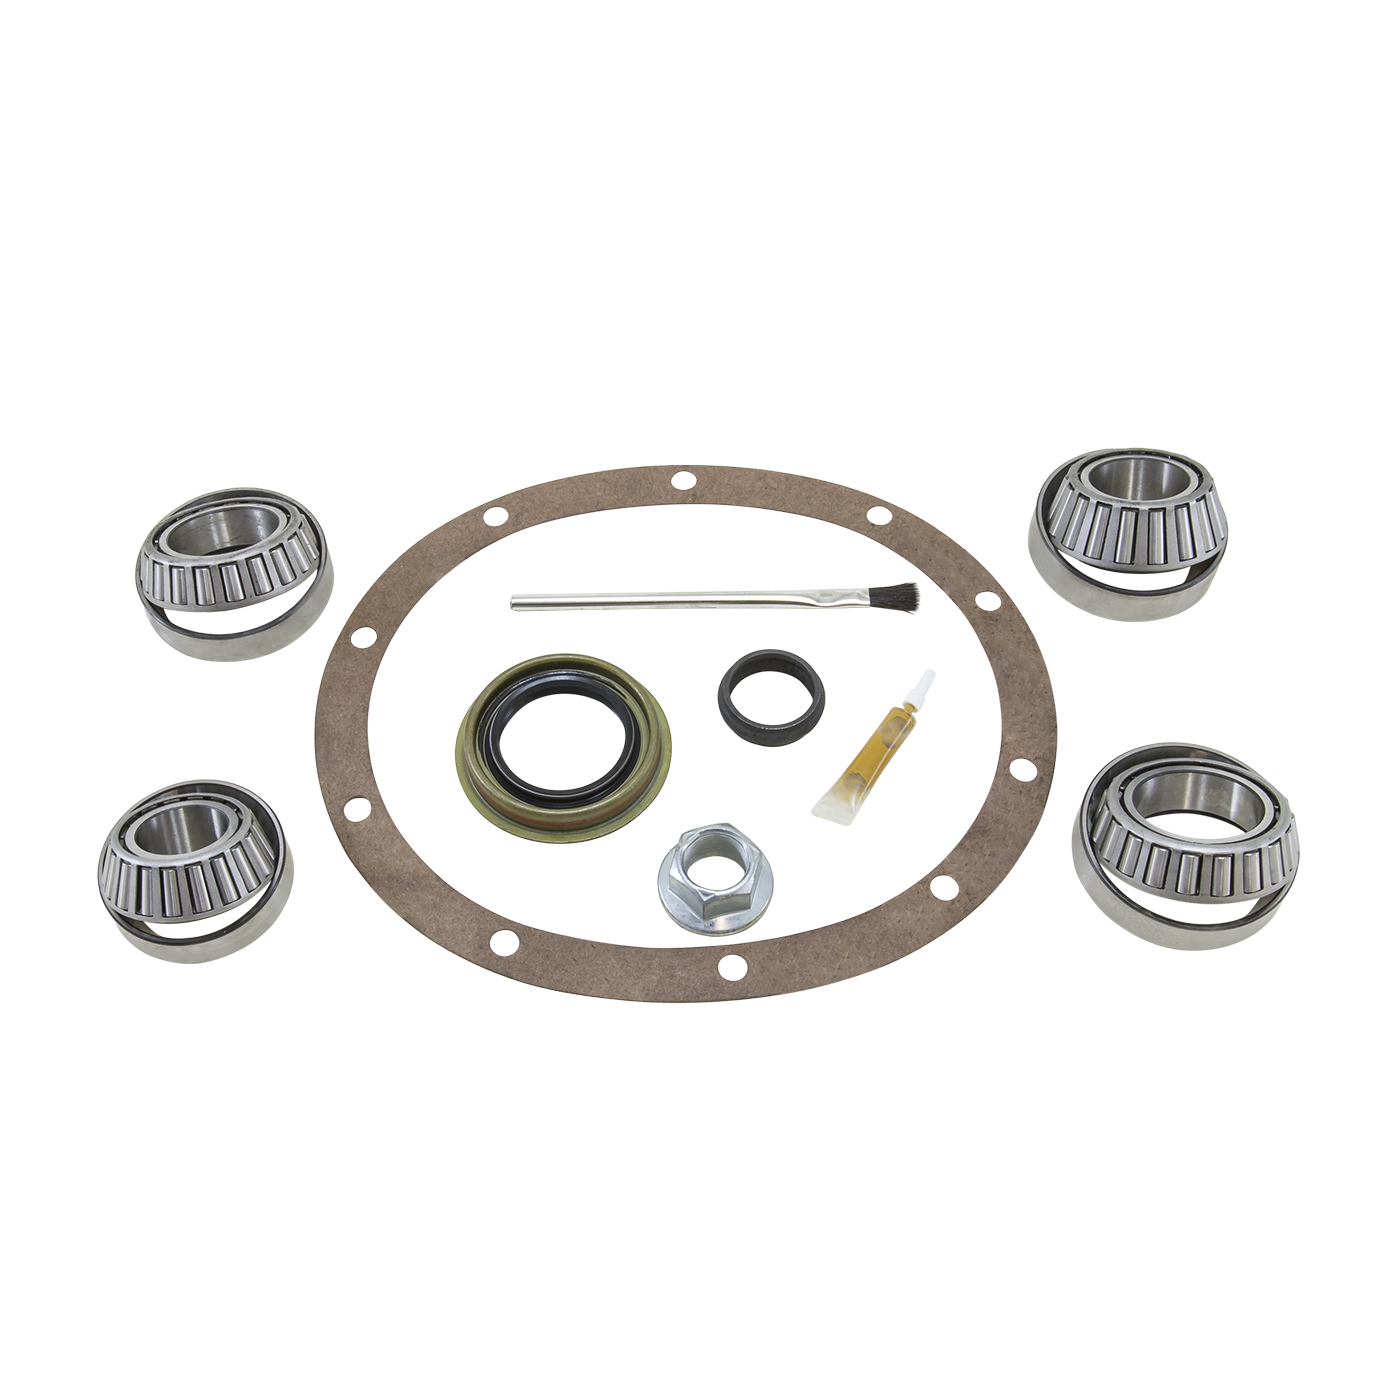 ZBKM20 - USA Standard Bearing kit for AMC Model 20